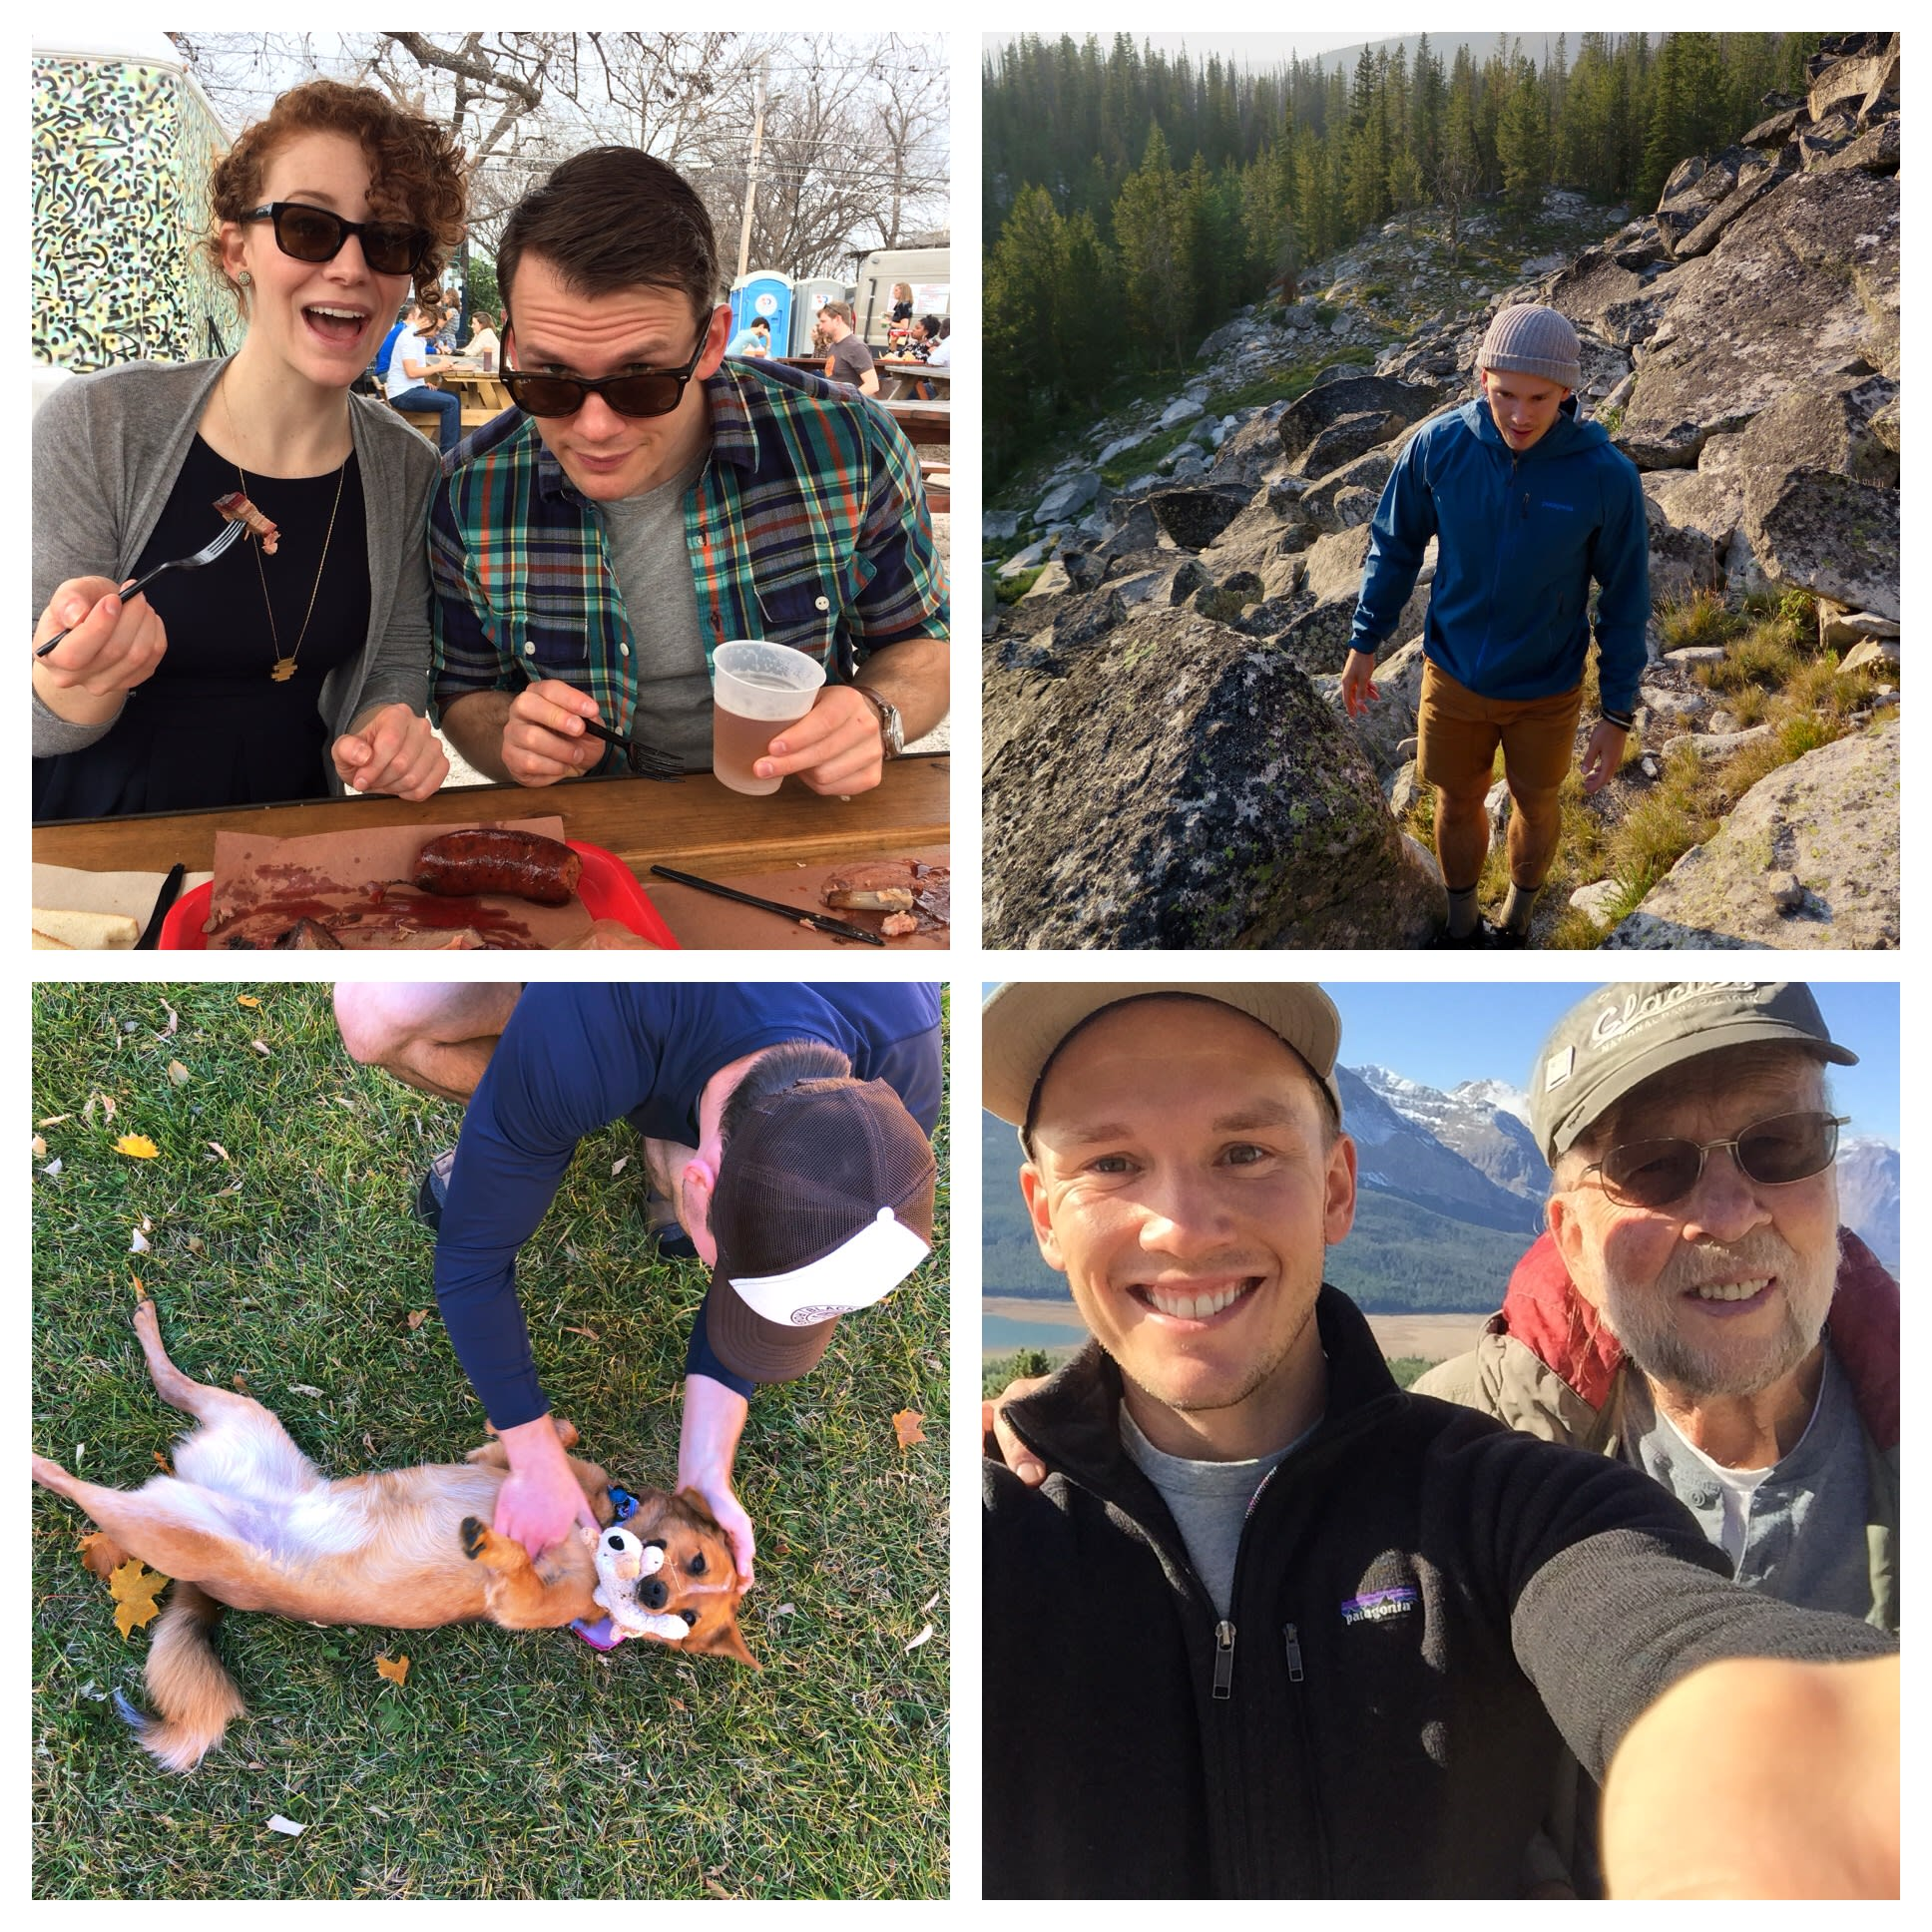 Eating BBQ in Austin; hiking in Montana; our new dog, Rally; in Glacier with my grandpa.